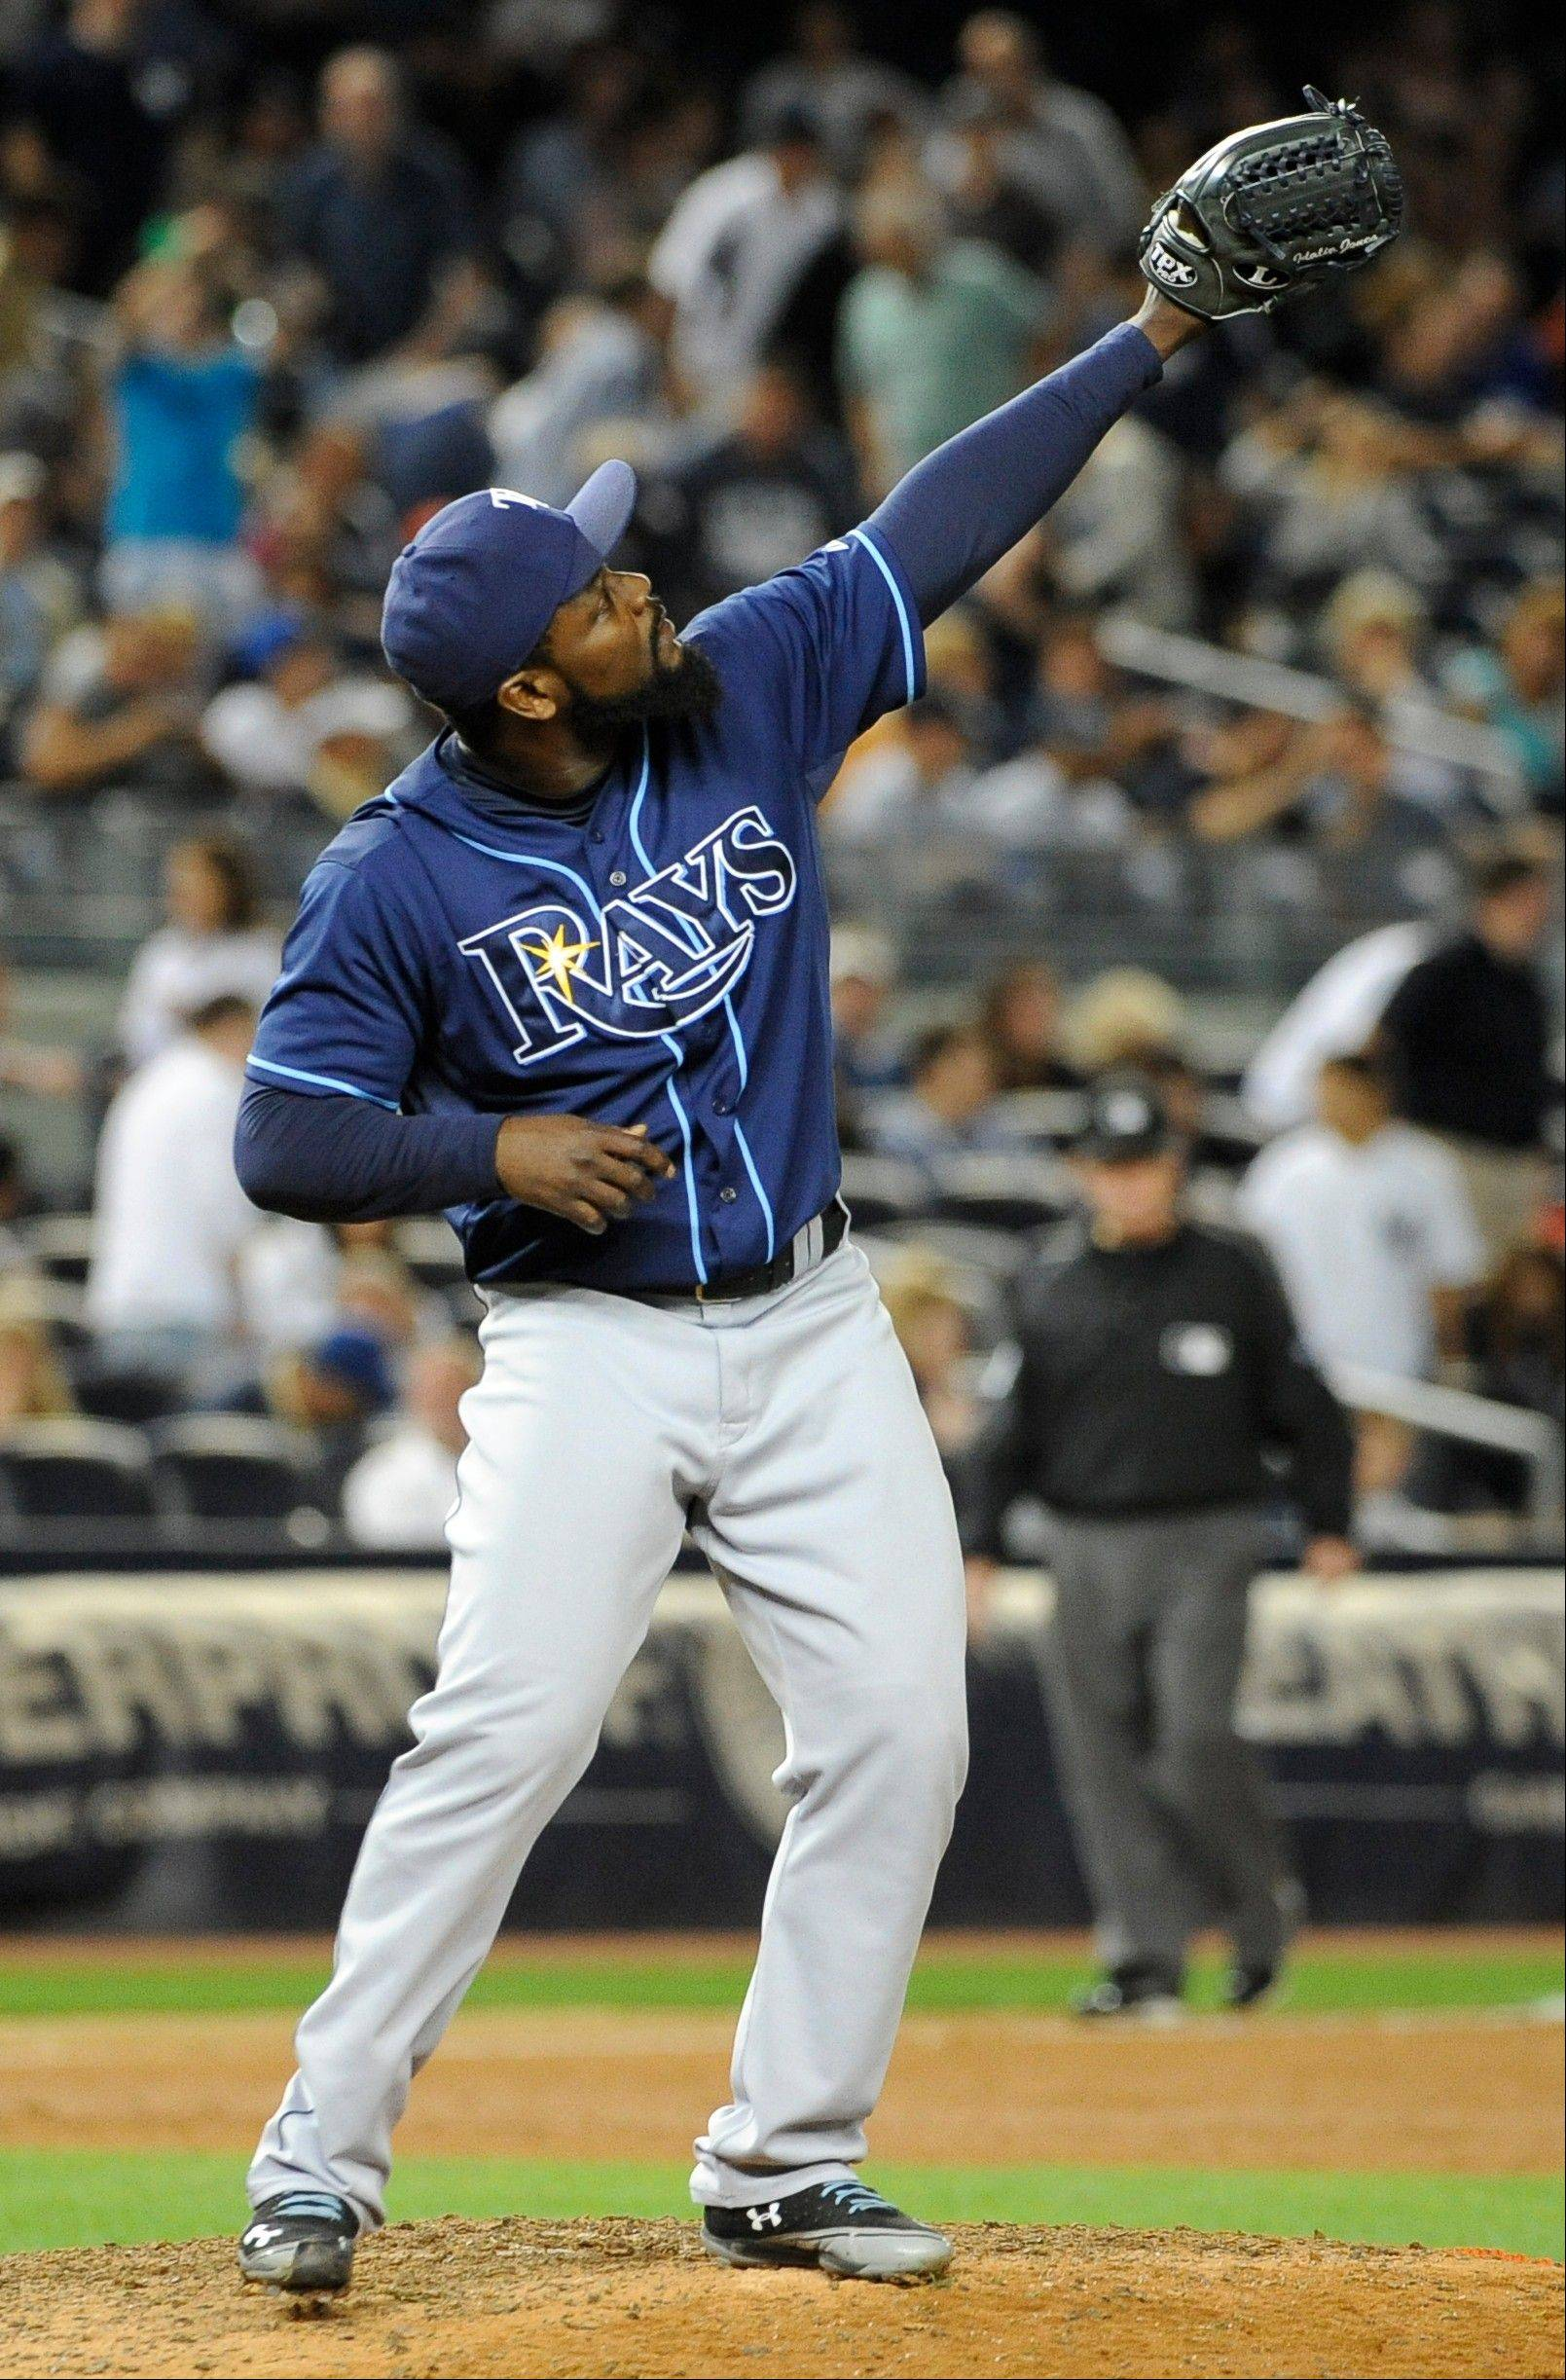 Tampa Bay Rays relief pitcher Fernando Rodney celebrates the Rays 6-4 win over the New York Yankees on Friday in New York.